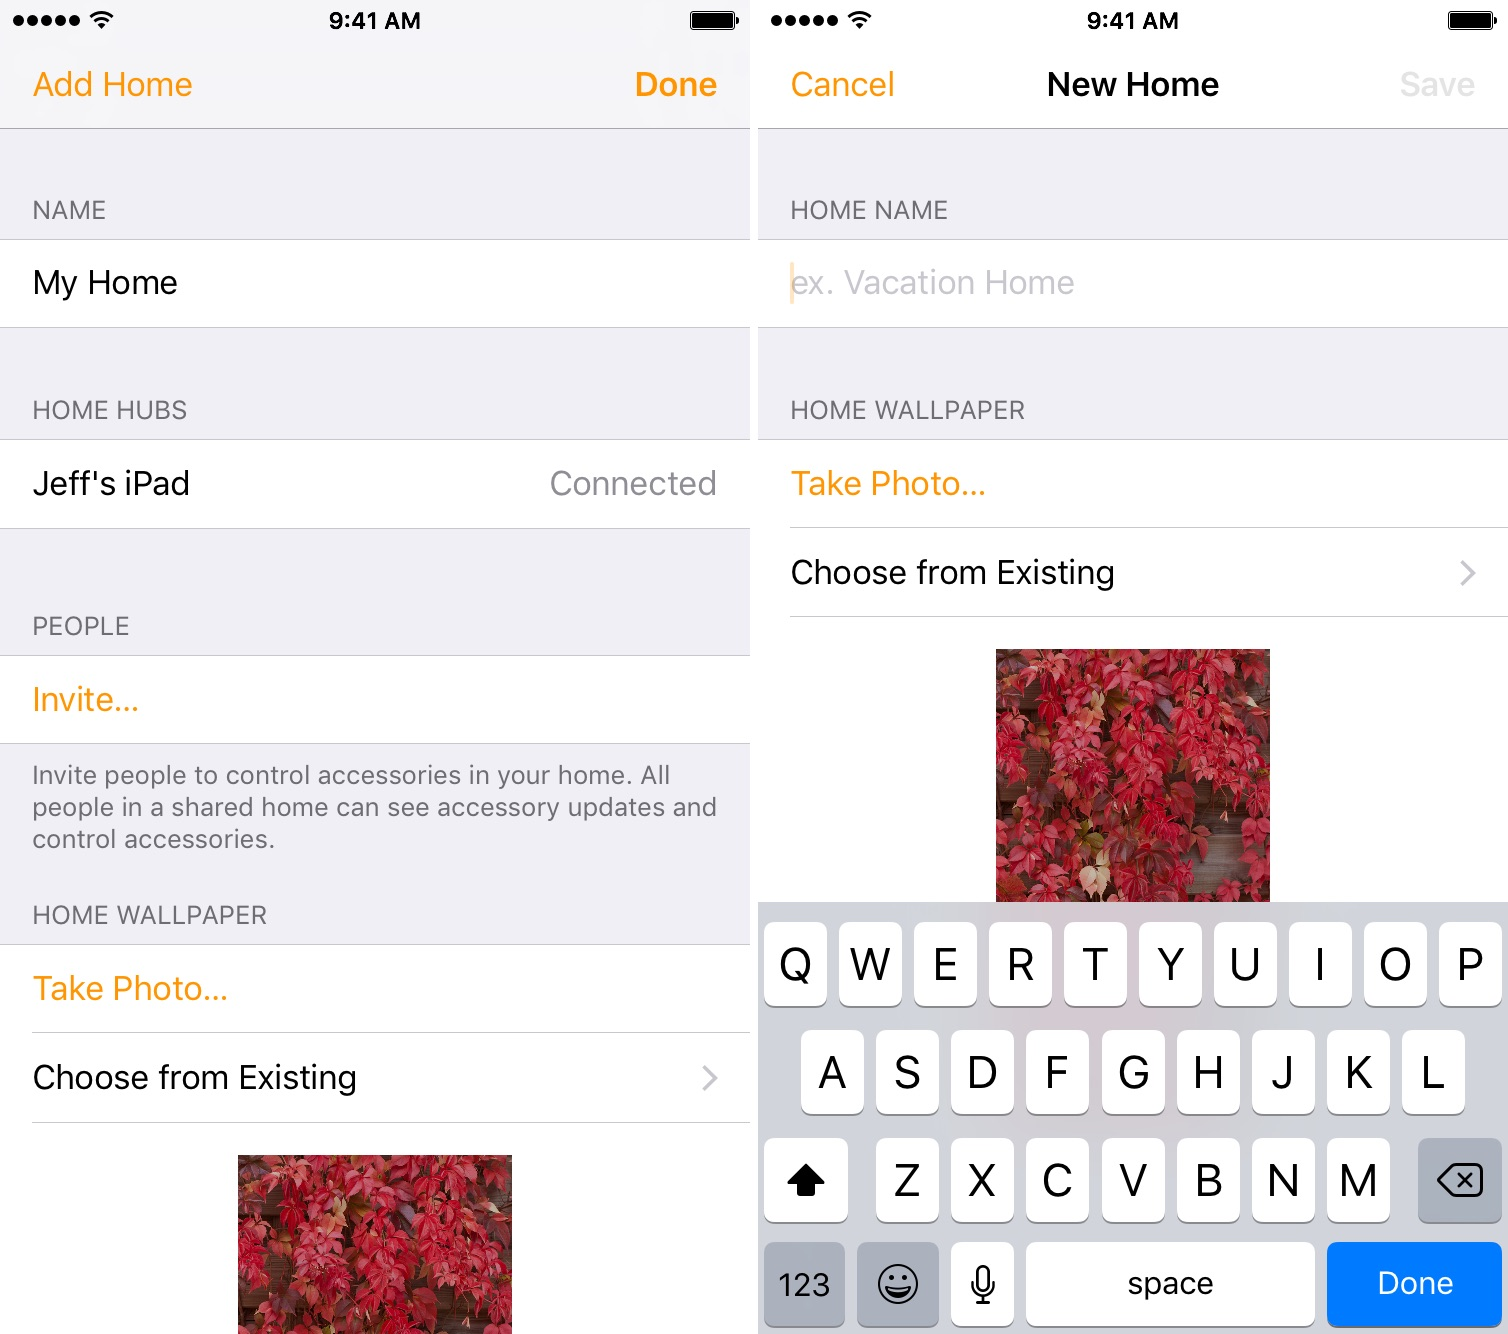 customize-and-add-a-new-home-in-home-app-ios-10